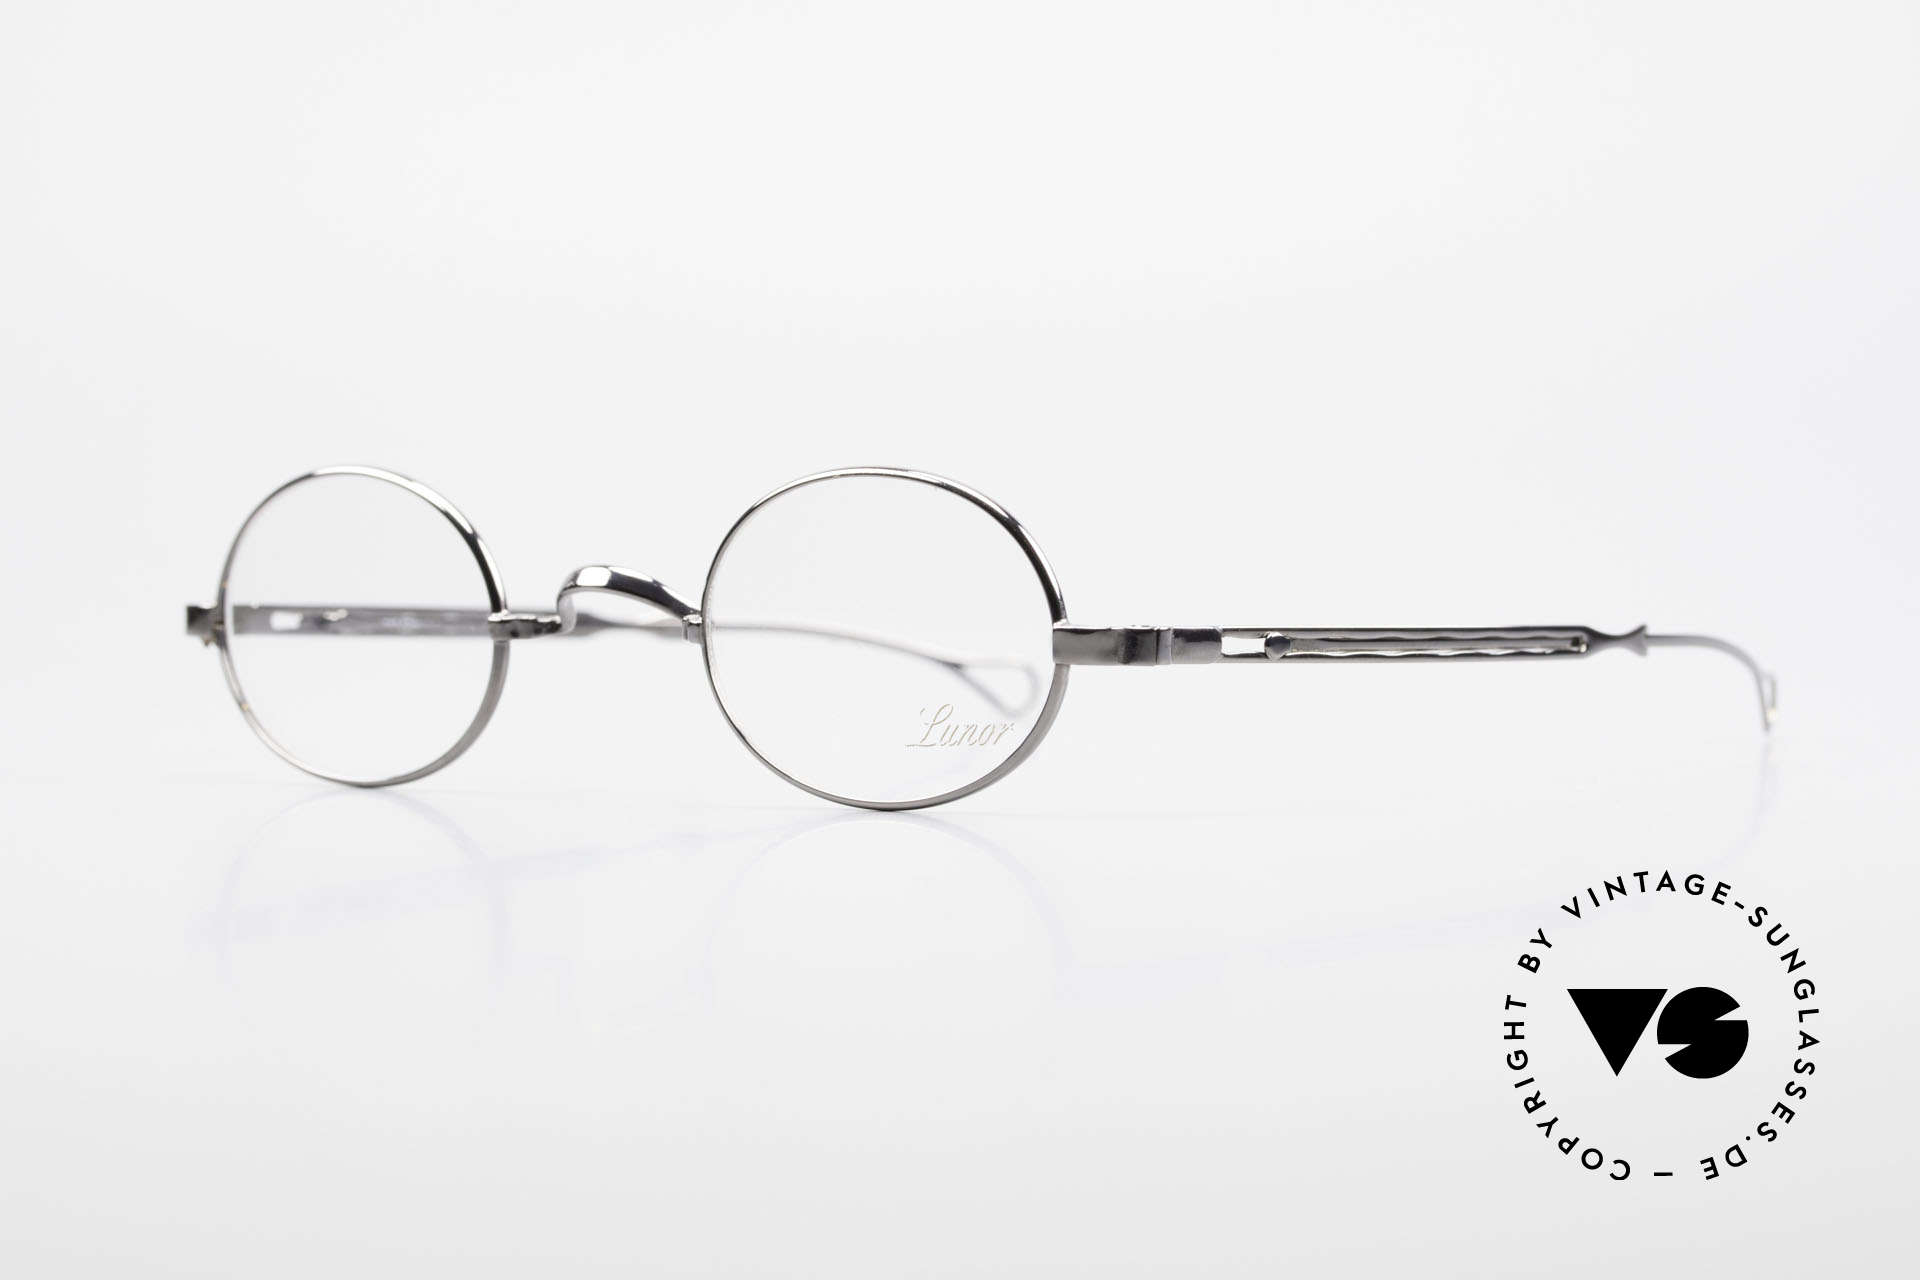 """Lunor I 22 Telescopic Oval Frame Extendable Arms, well-known for the """"W-bridge"""" & the plain frame designs, Made for Men and Women"""